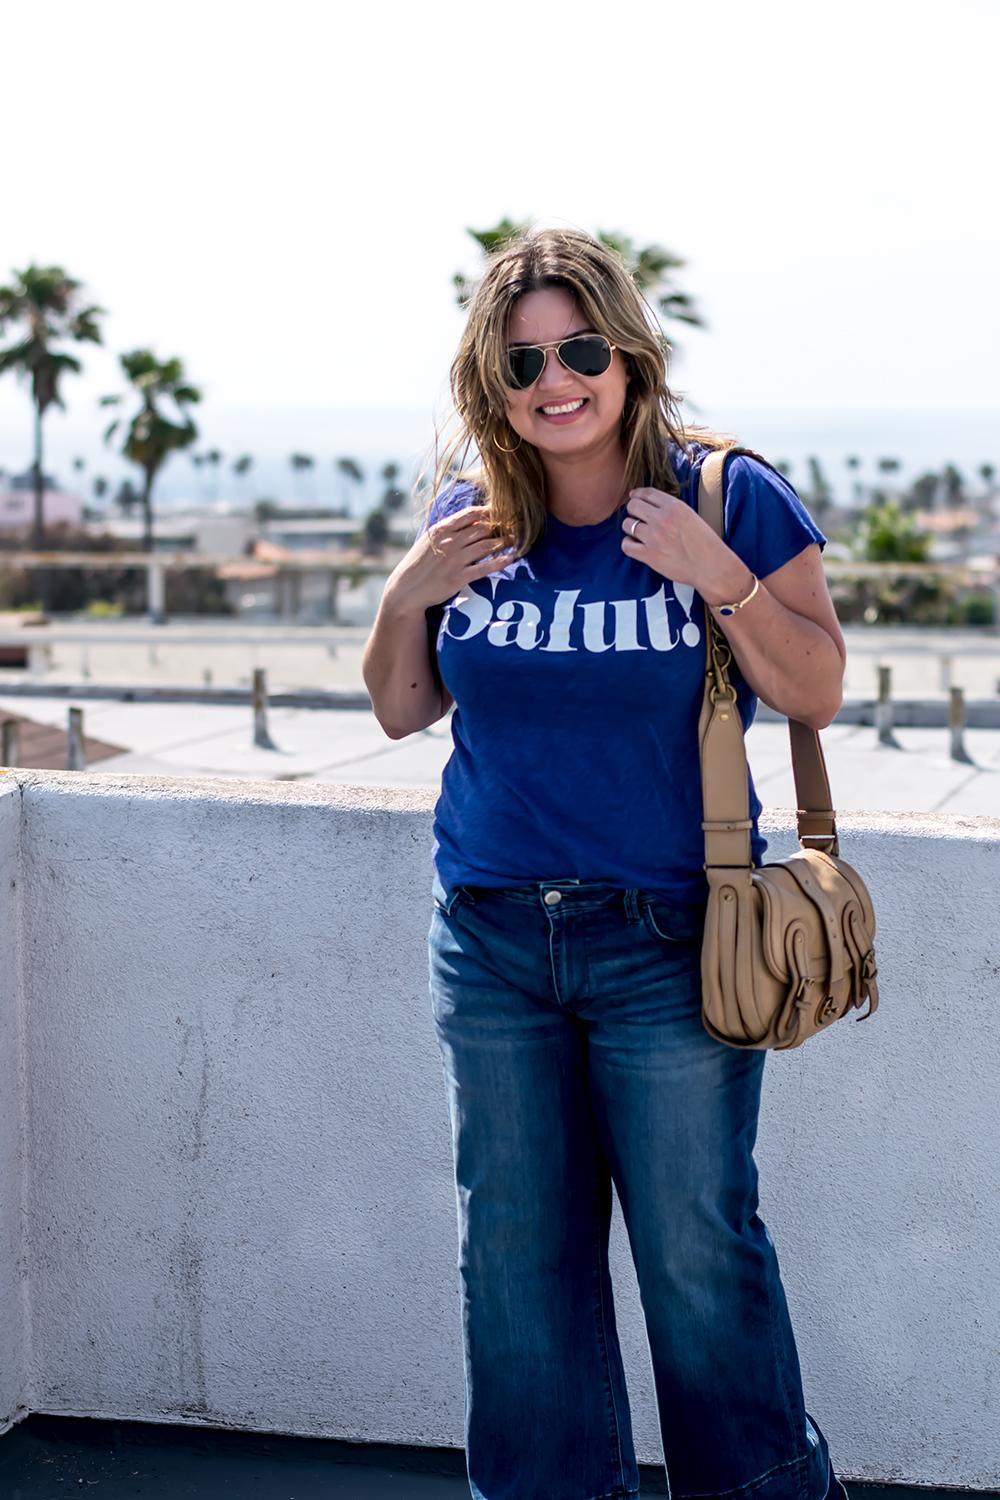 Top-10-graphic-tees-2017-biggest-fashion-trends-barefoot-in-la-fashion-blog-style-outfit-ideas-how-to-wear-a-graphic-tee_1292